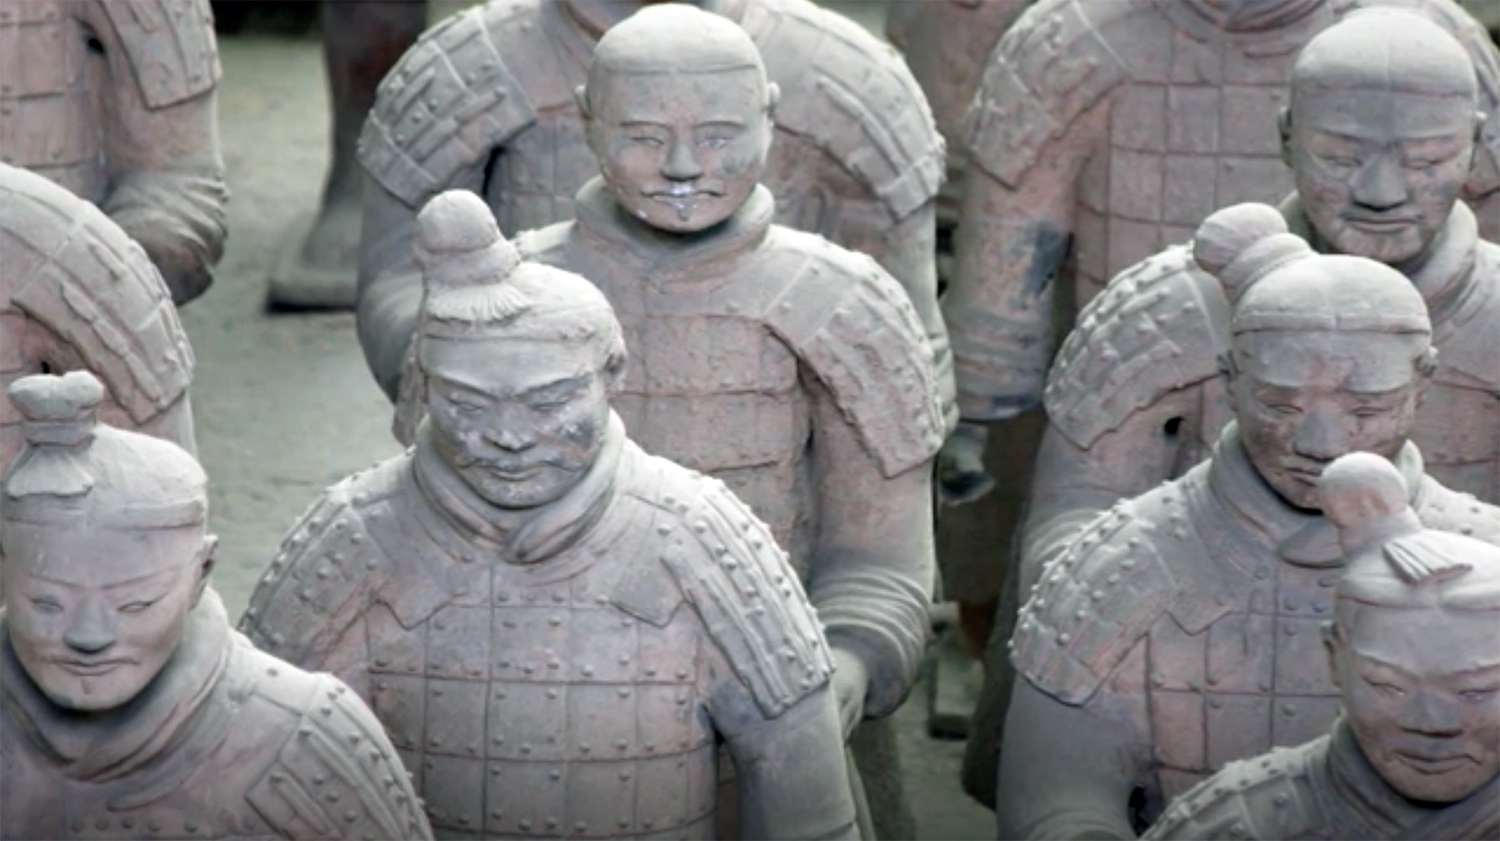 The Terracotta Army  in Xi'an, Lintong District, Shaanxi, China, late third century BCE (detail). Still from